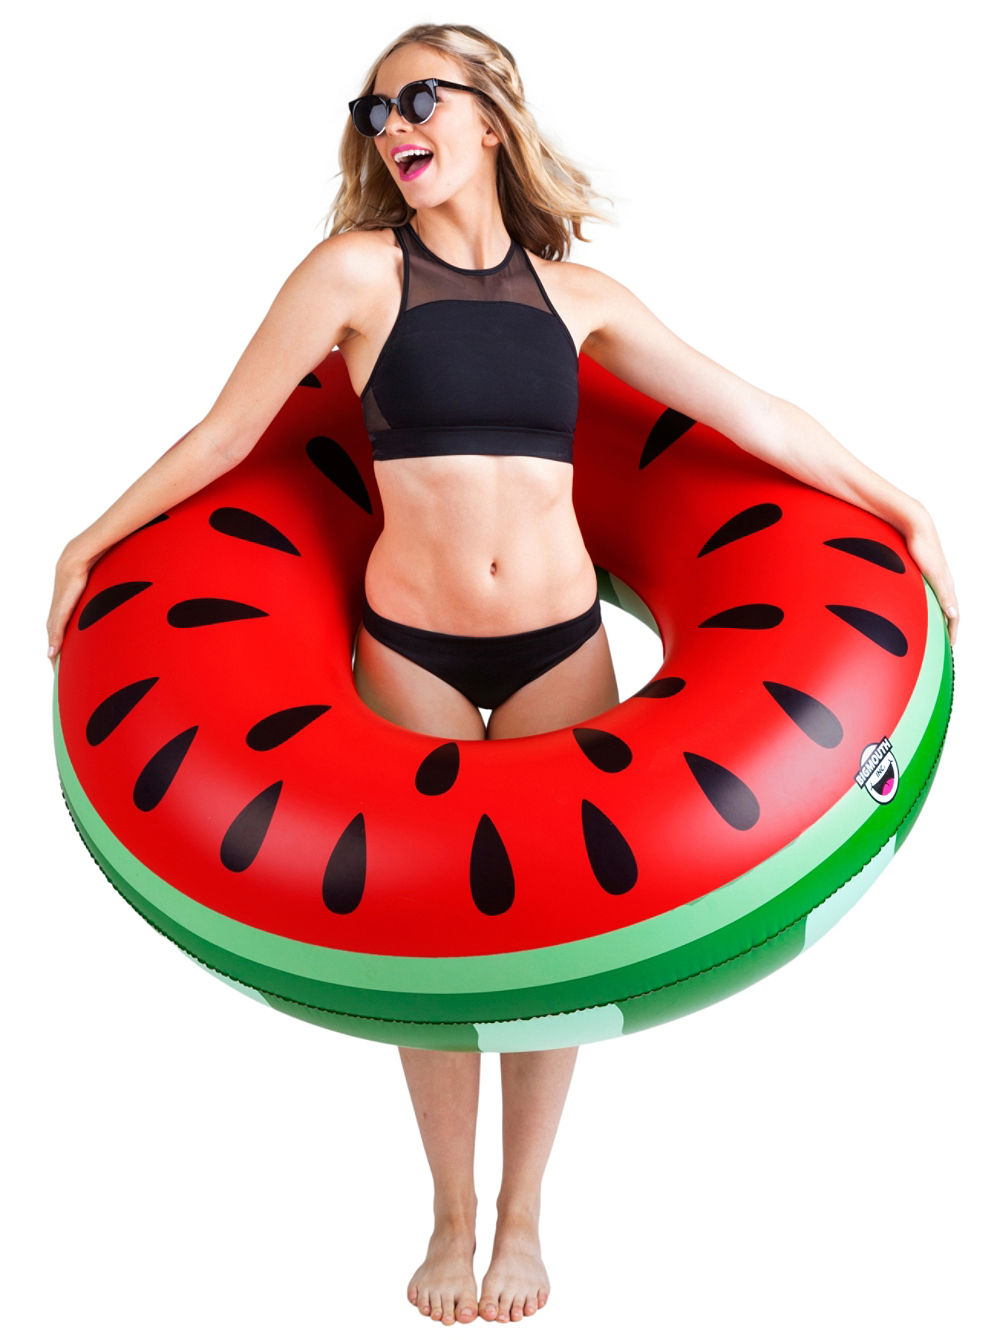 big mouth toys pool float giant watermelon online kaufen bei blue. Black Bedroom Furniture Sets. Home Design Ideas